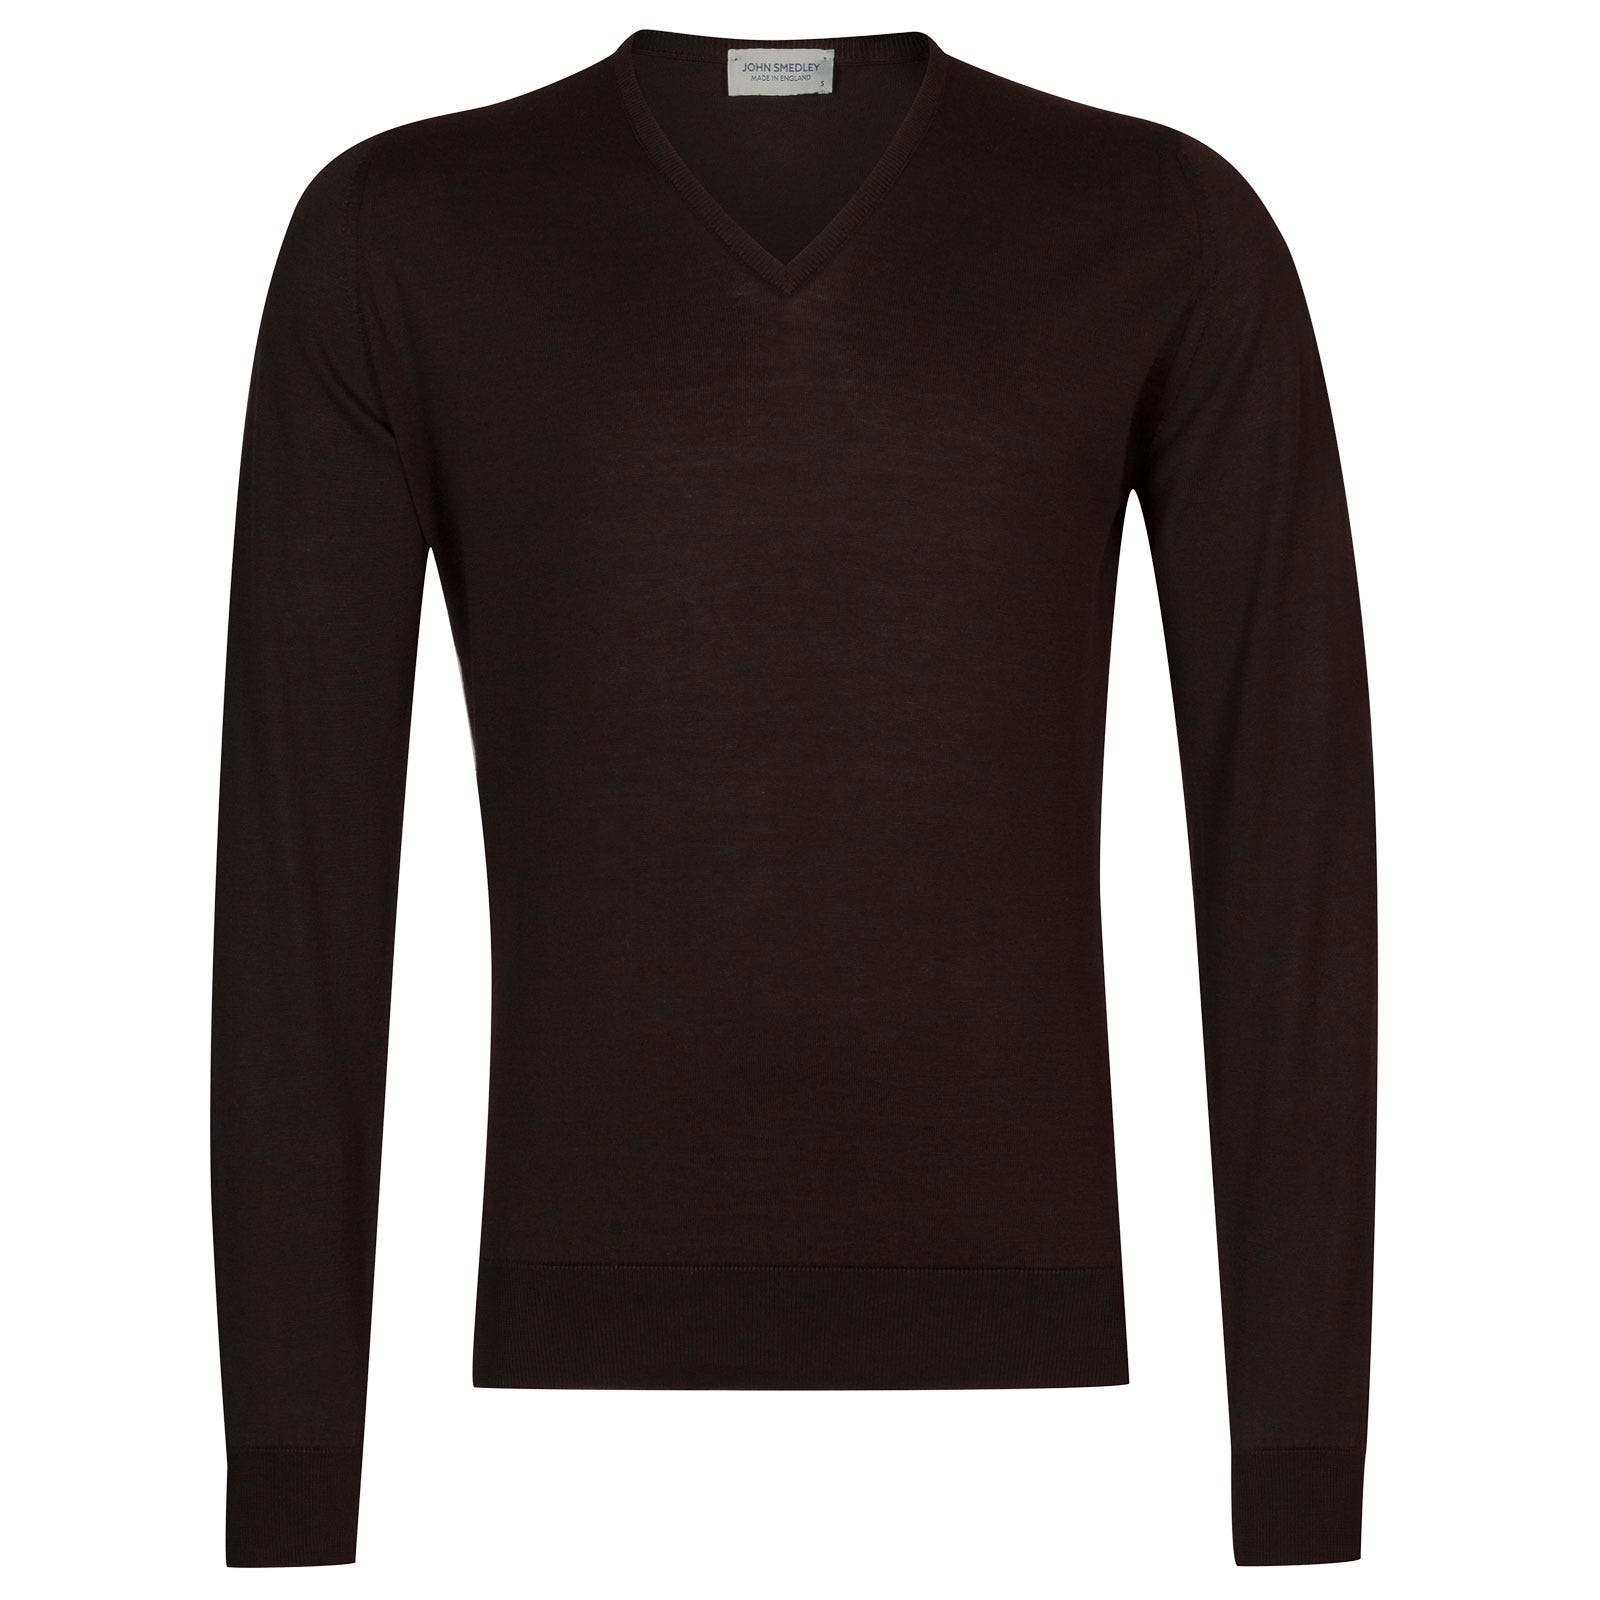 John Smedley Woburn Sea Island Cotton Pullover in Dark Leather-S